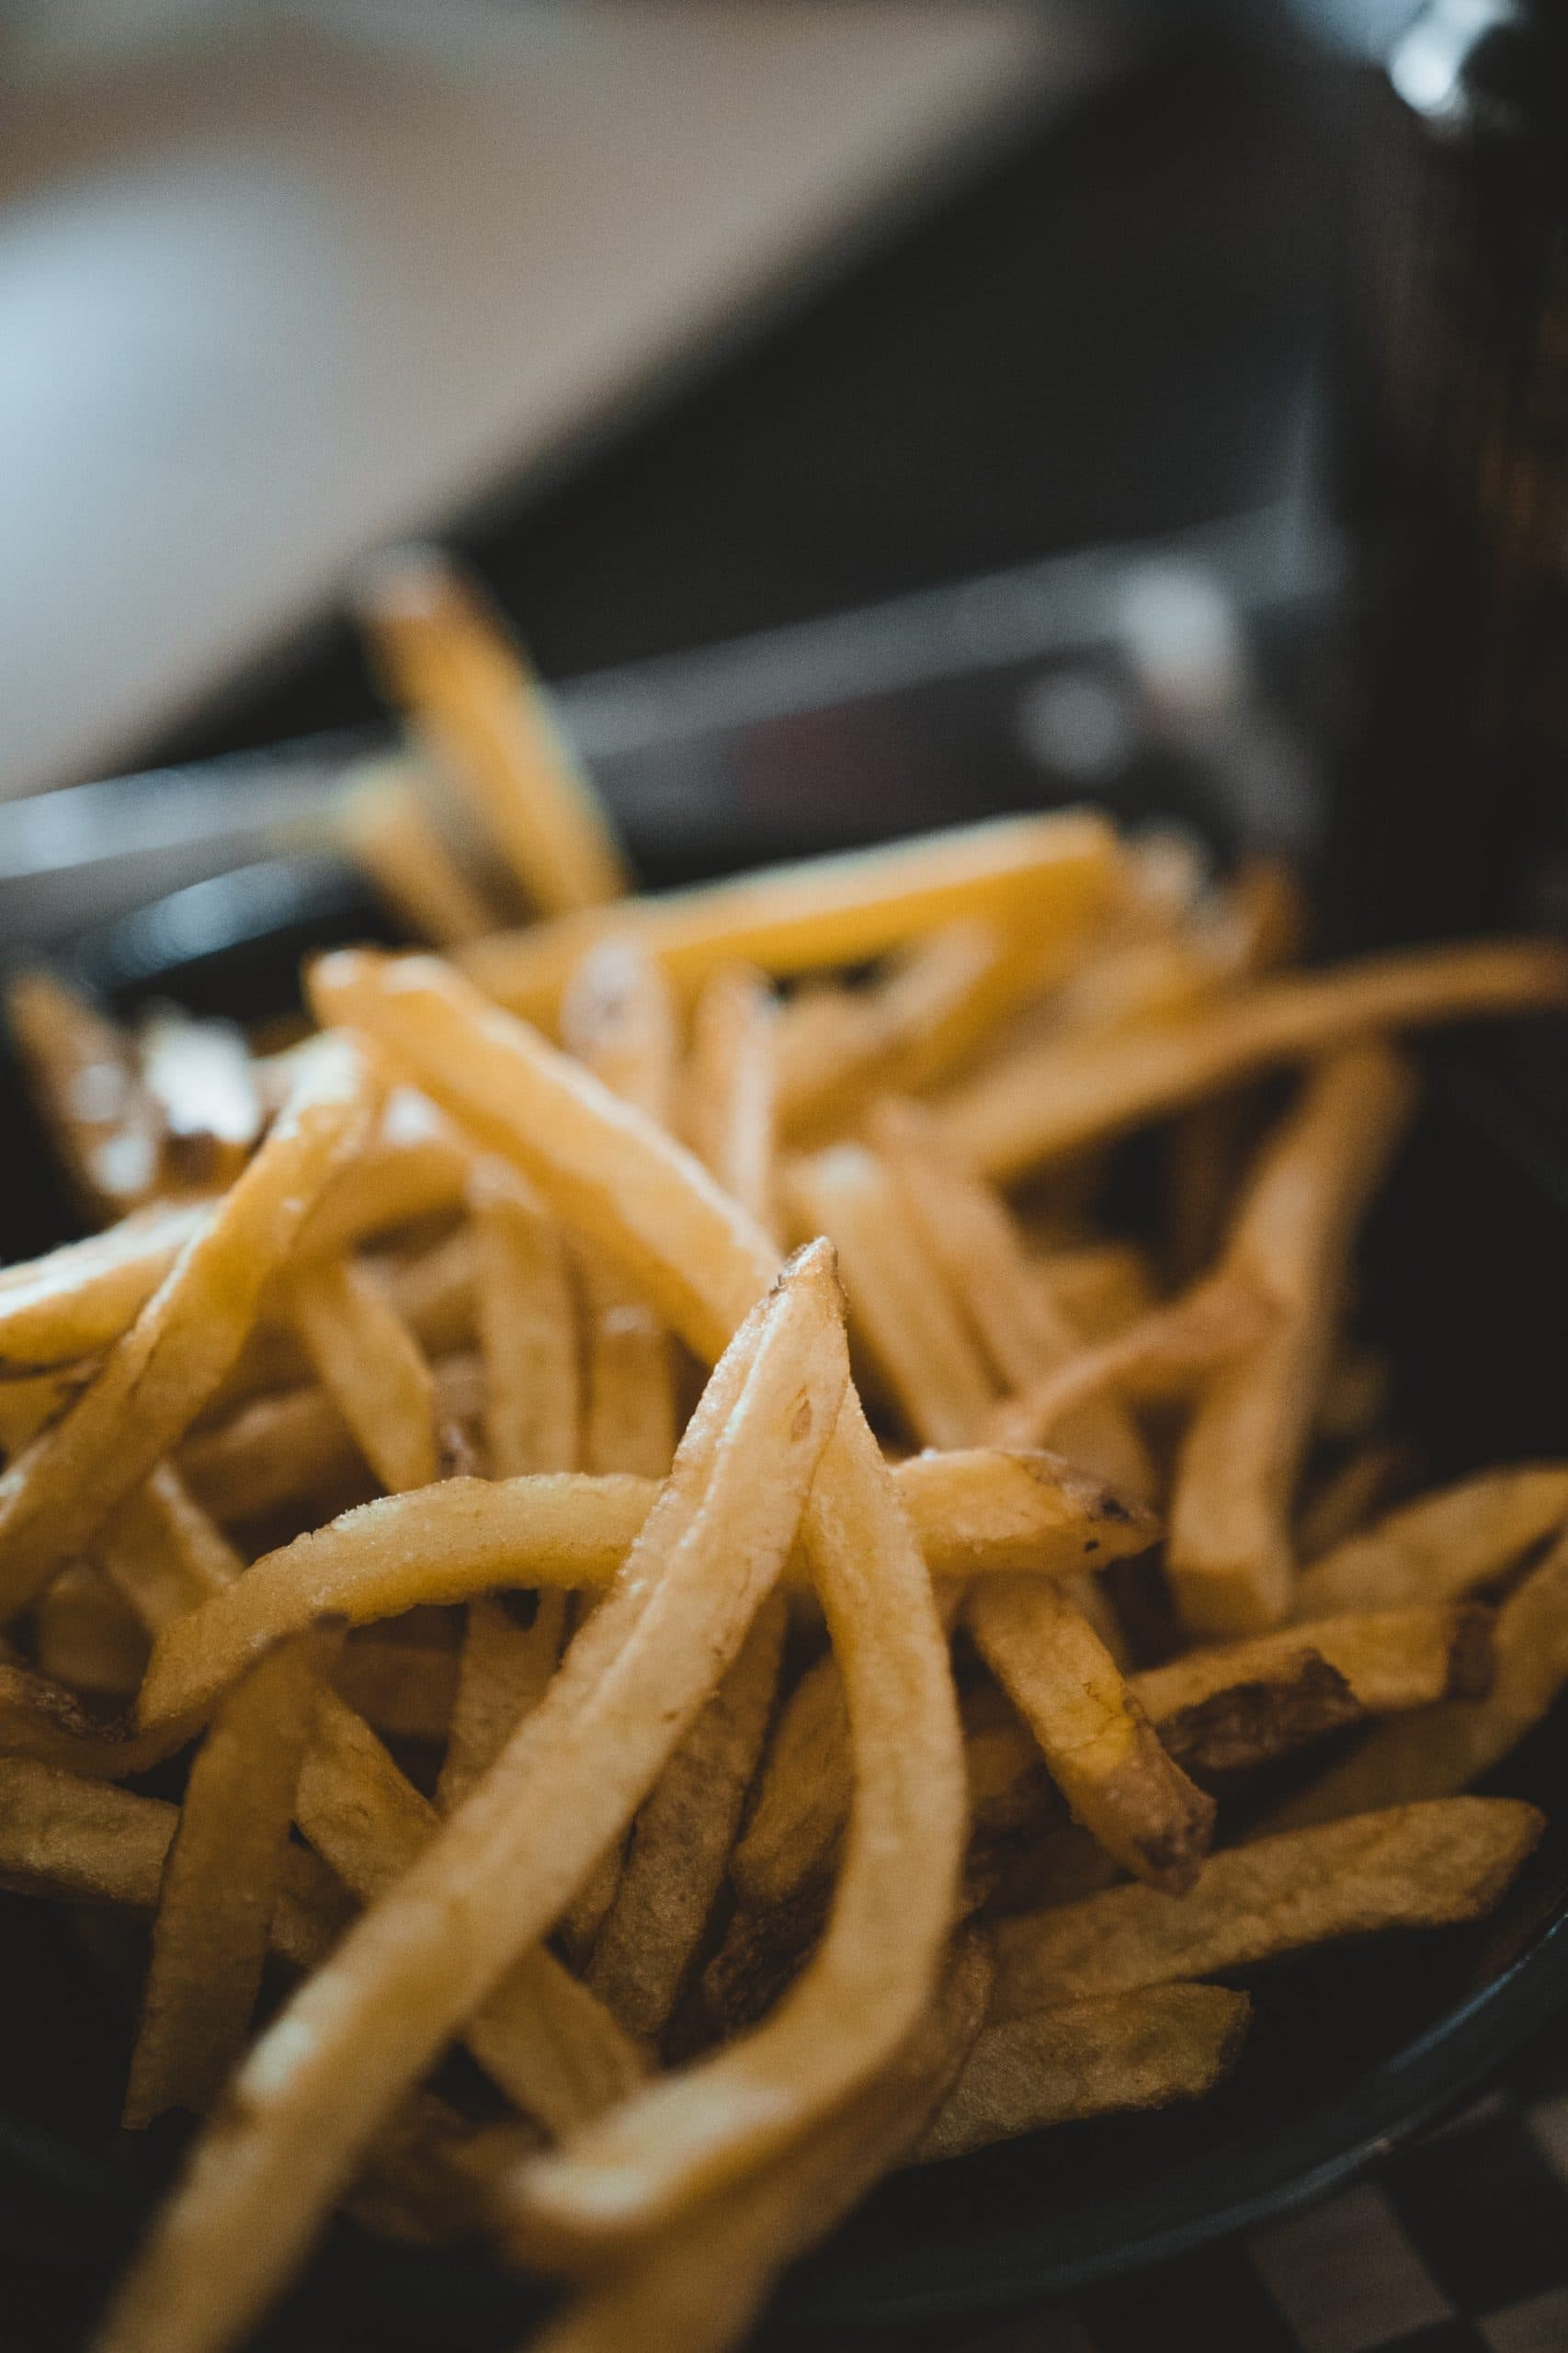 Should You Stop Eating Fried Food From Restaurants?